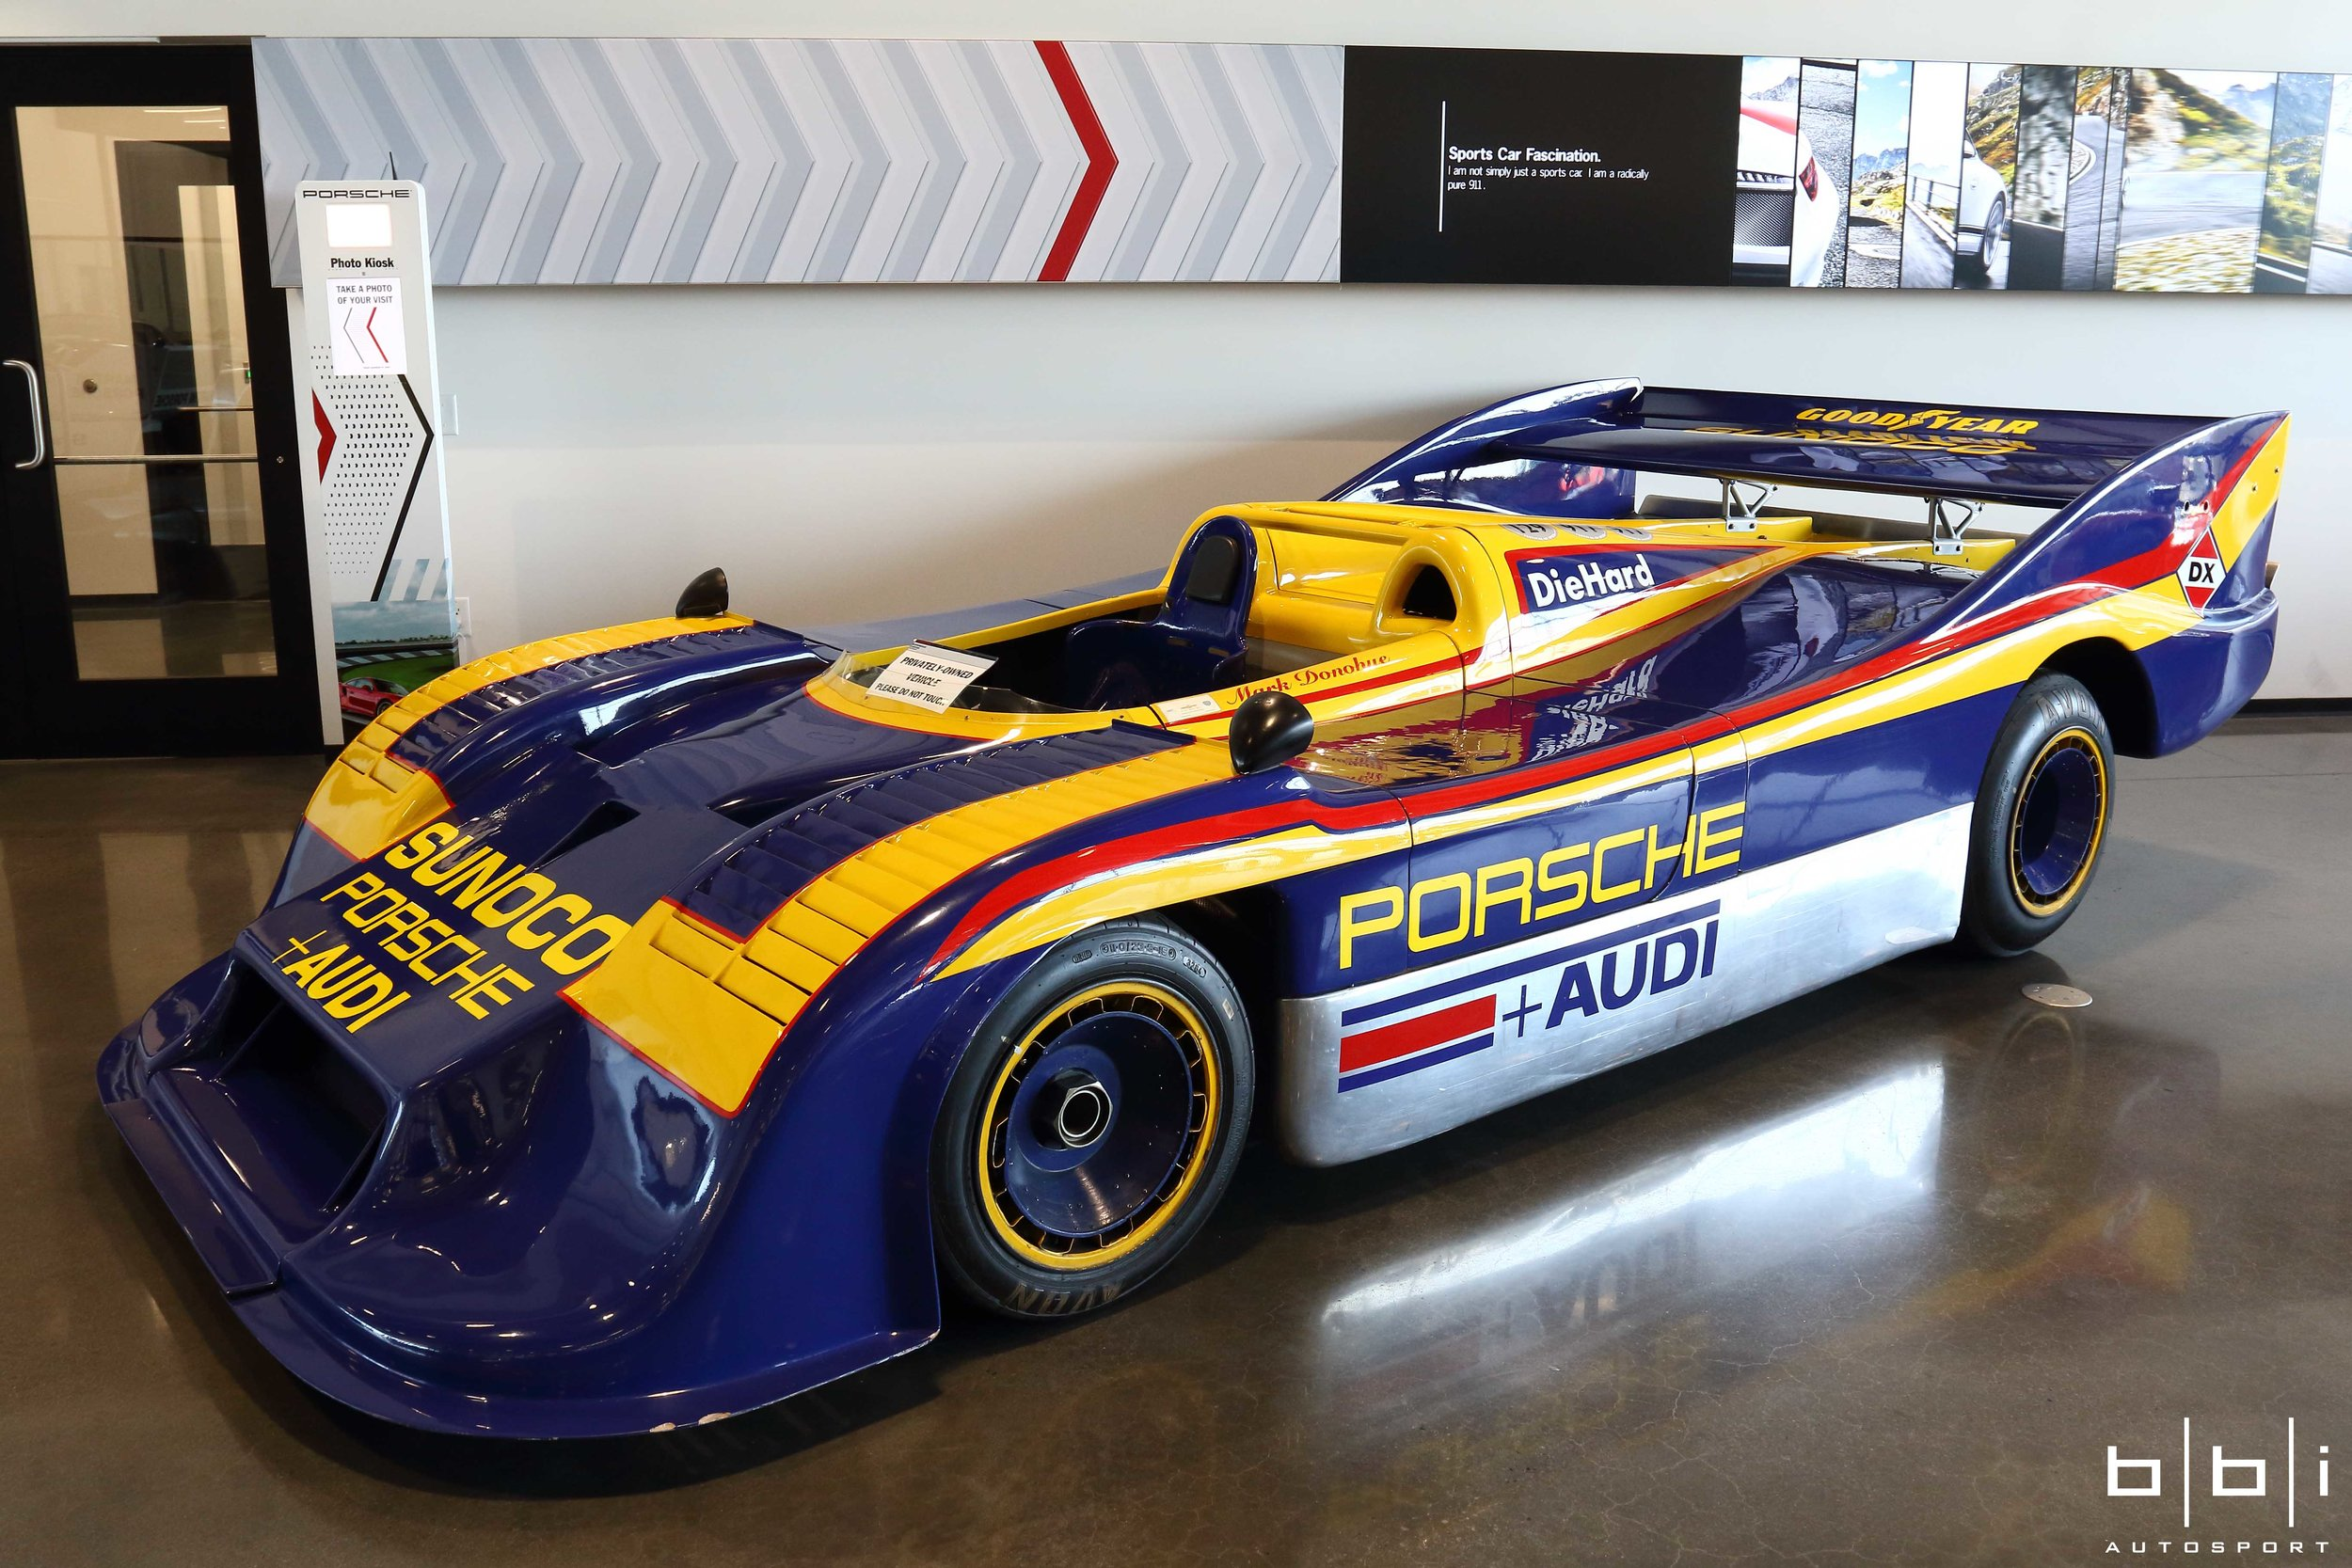 Driven by Mark Donohue, this Porsche 917/30 was the most powerful sports car racer ever built and raced as it was capable of producing 1,580 bhp with it's 5.374 litre 12 cylinder engine.